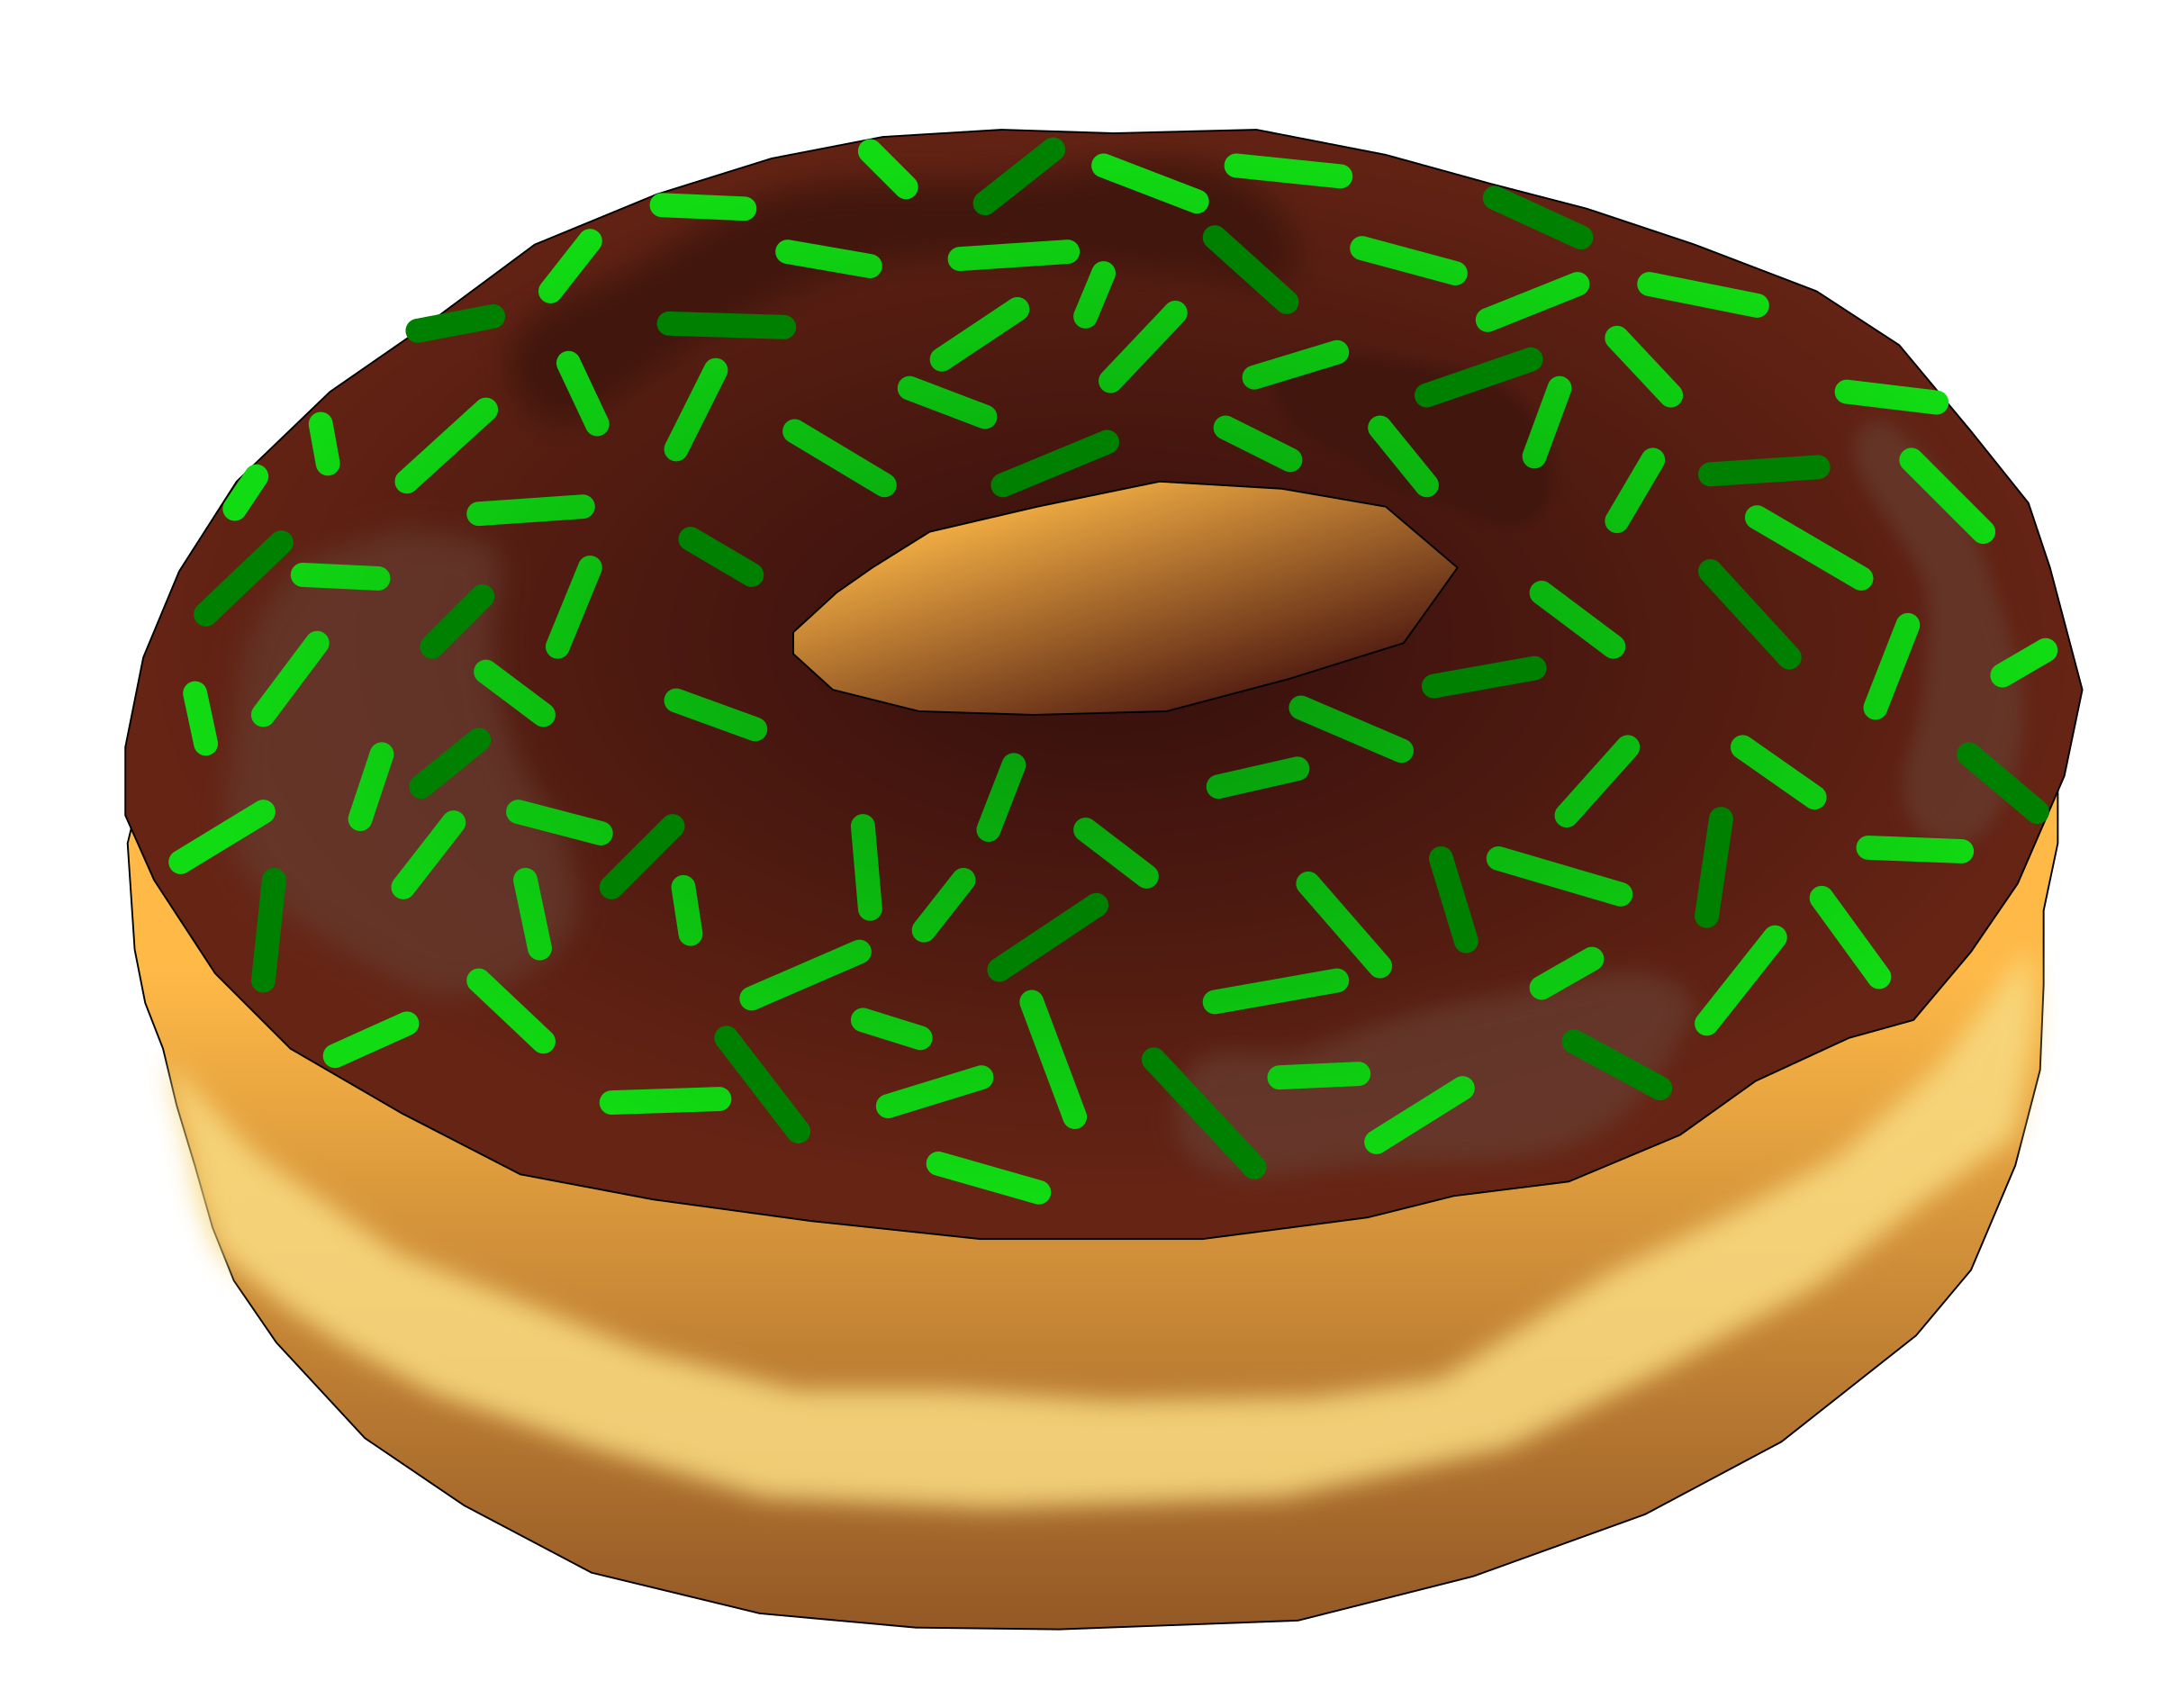 Donuts clipart green. Donut icons png free